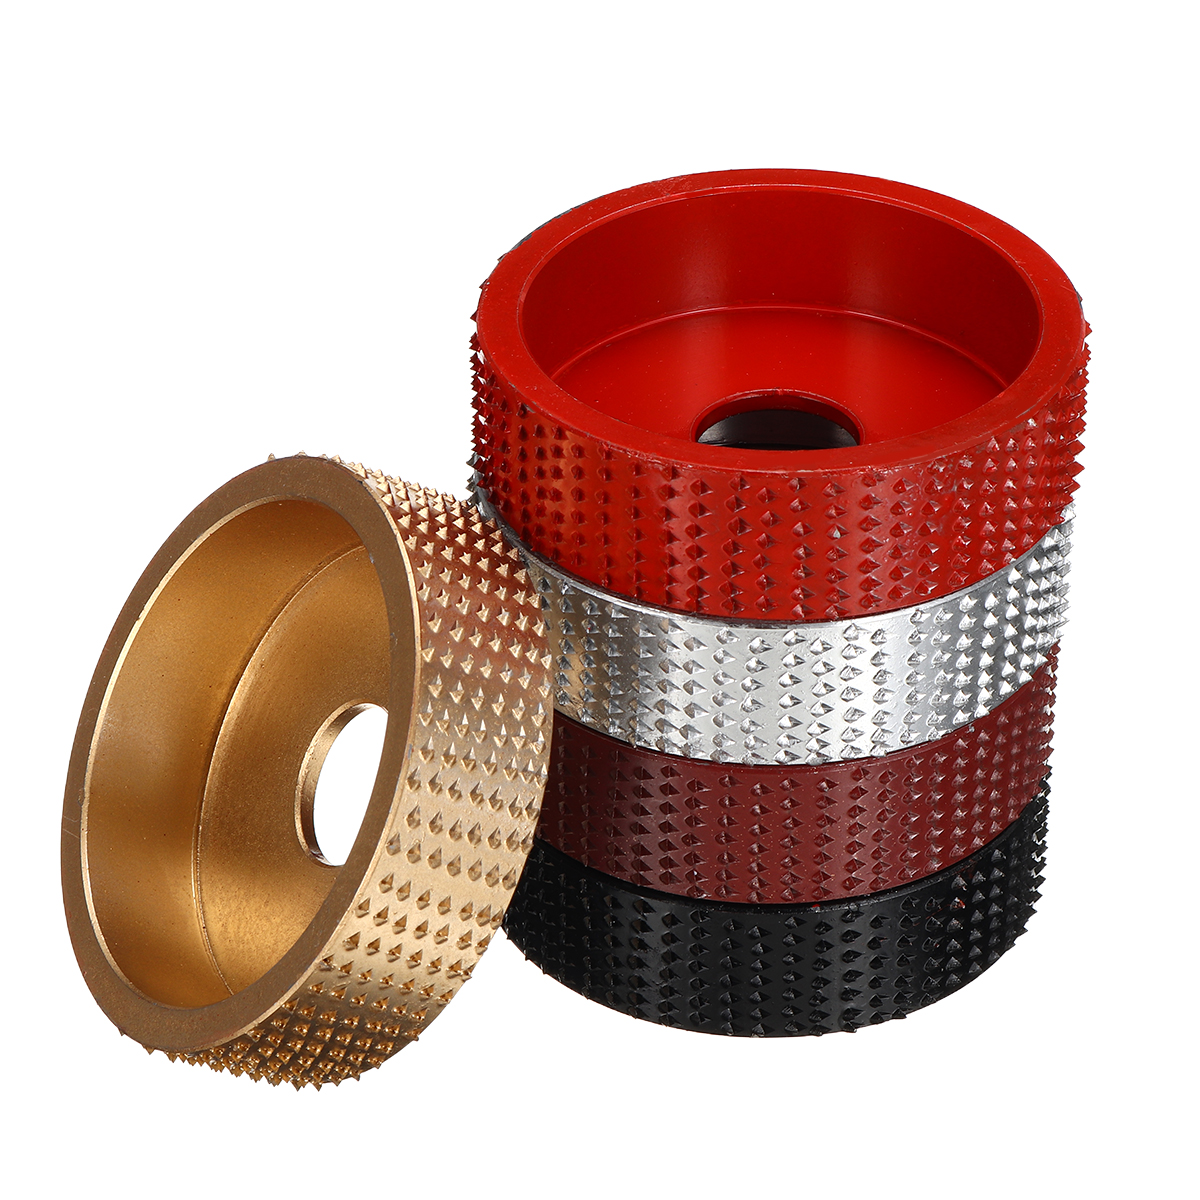 Wood Angle Grinding Wheel Sanding Carving Rotary Tool Abrasive Disc Angle Grinder Tungsten Carbide Coating Bore Shaping